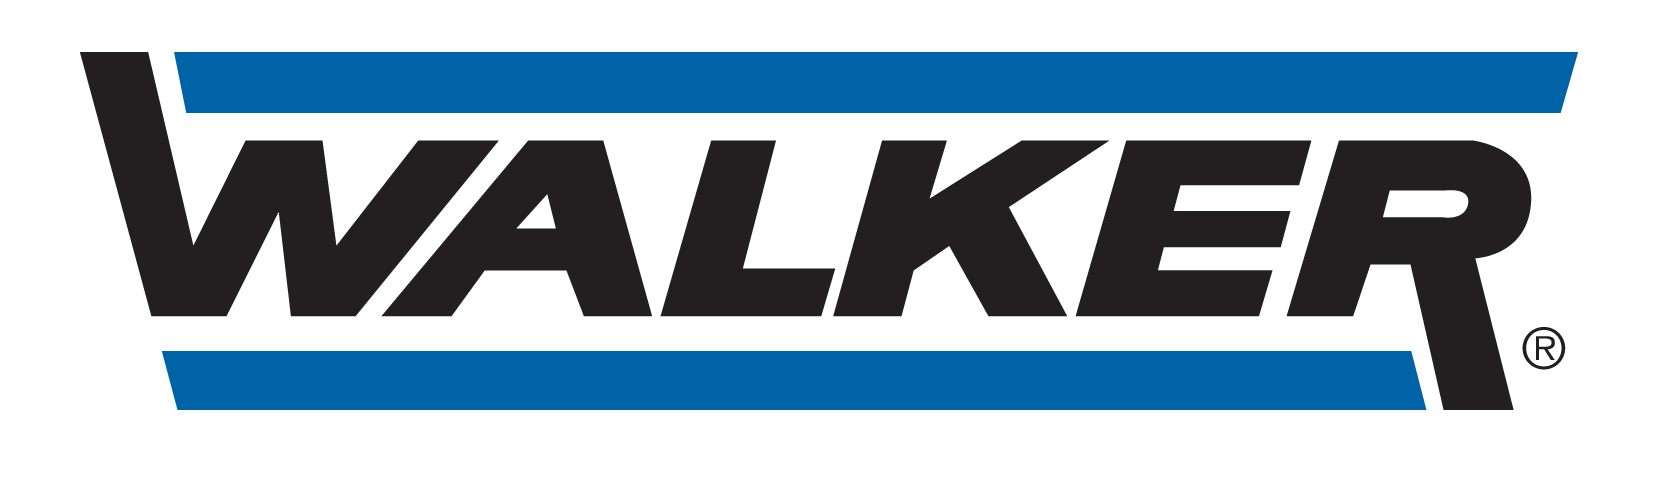 LAURIS AUTO SERVICES - logo Walker